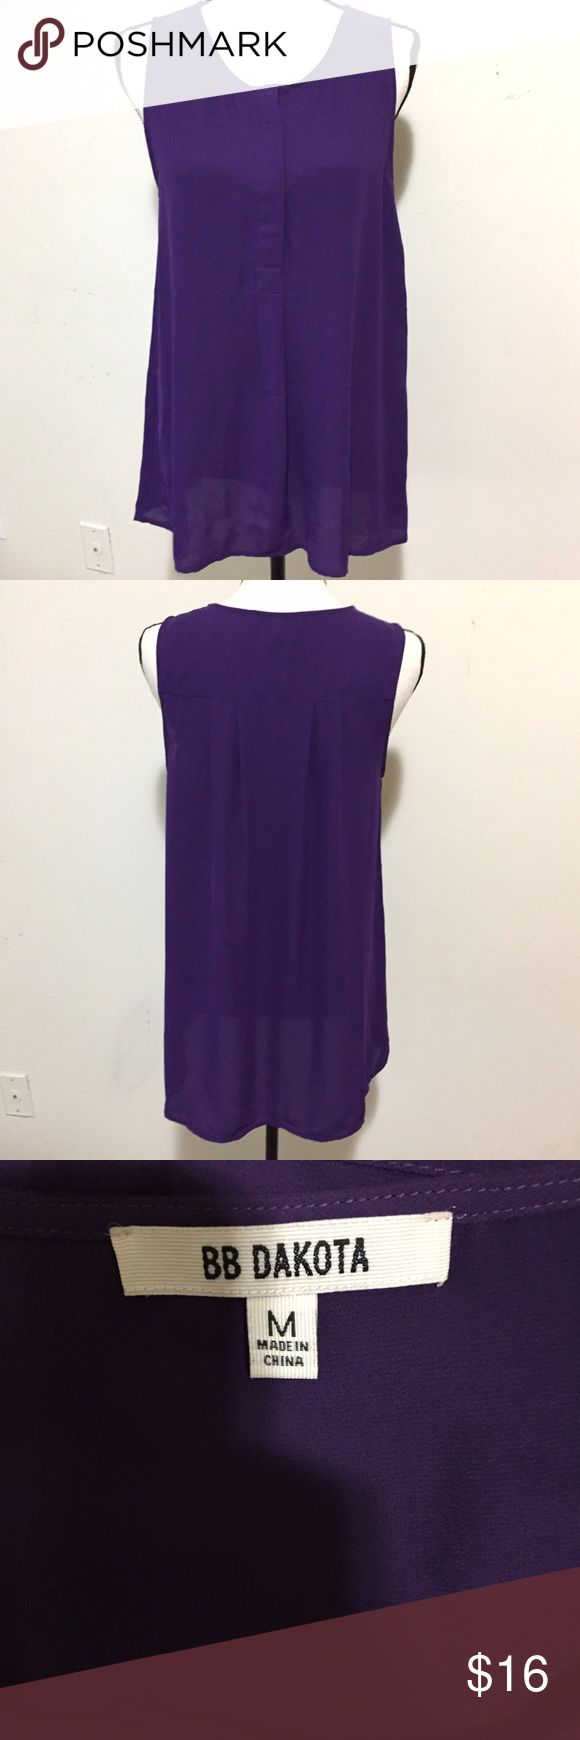 """NWT BB Dakota Long Tunic Sheer Tank Top This purple BB Dakota Long Tunic Sheer Tank Top blouse is brand new. The actual """"price tag"""" isn't attached, but you can see from the pictures that the extra button tag is still attached. Size Medium. Double layered so it's not see through. Lightweight and comfortable! BB Dakota Tops Tank Tops"""